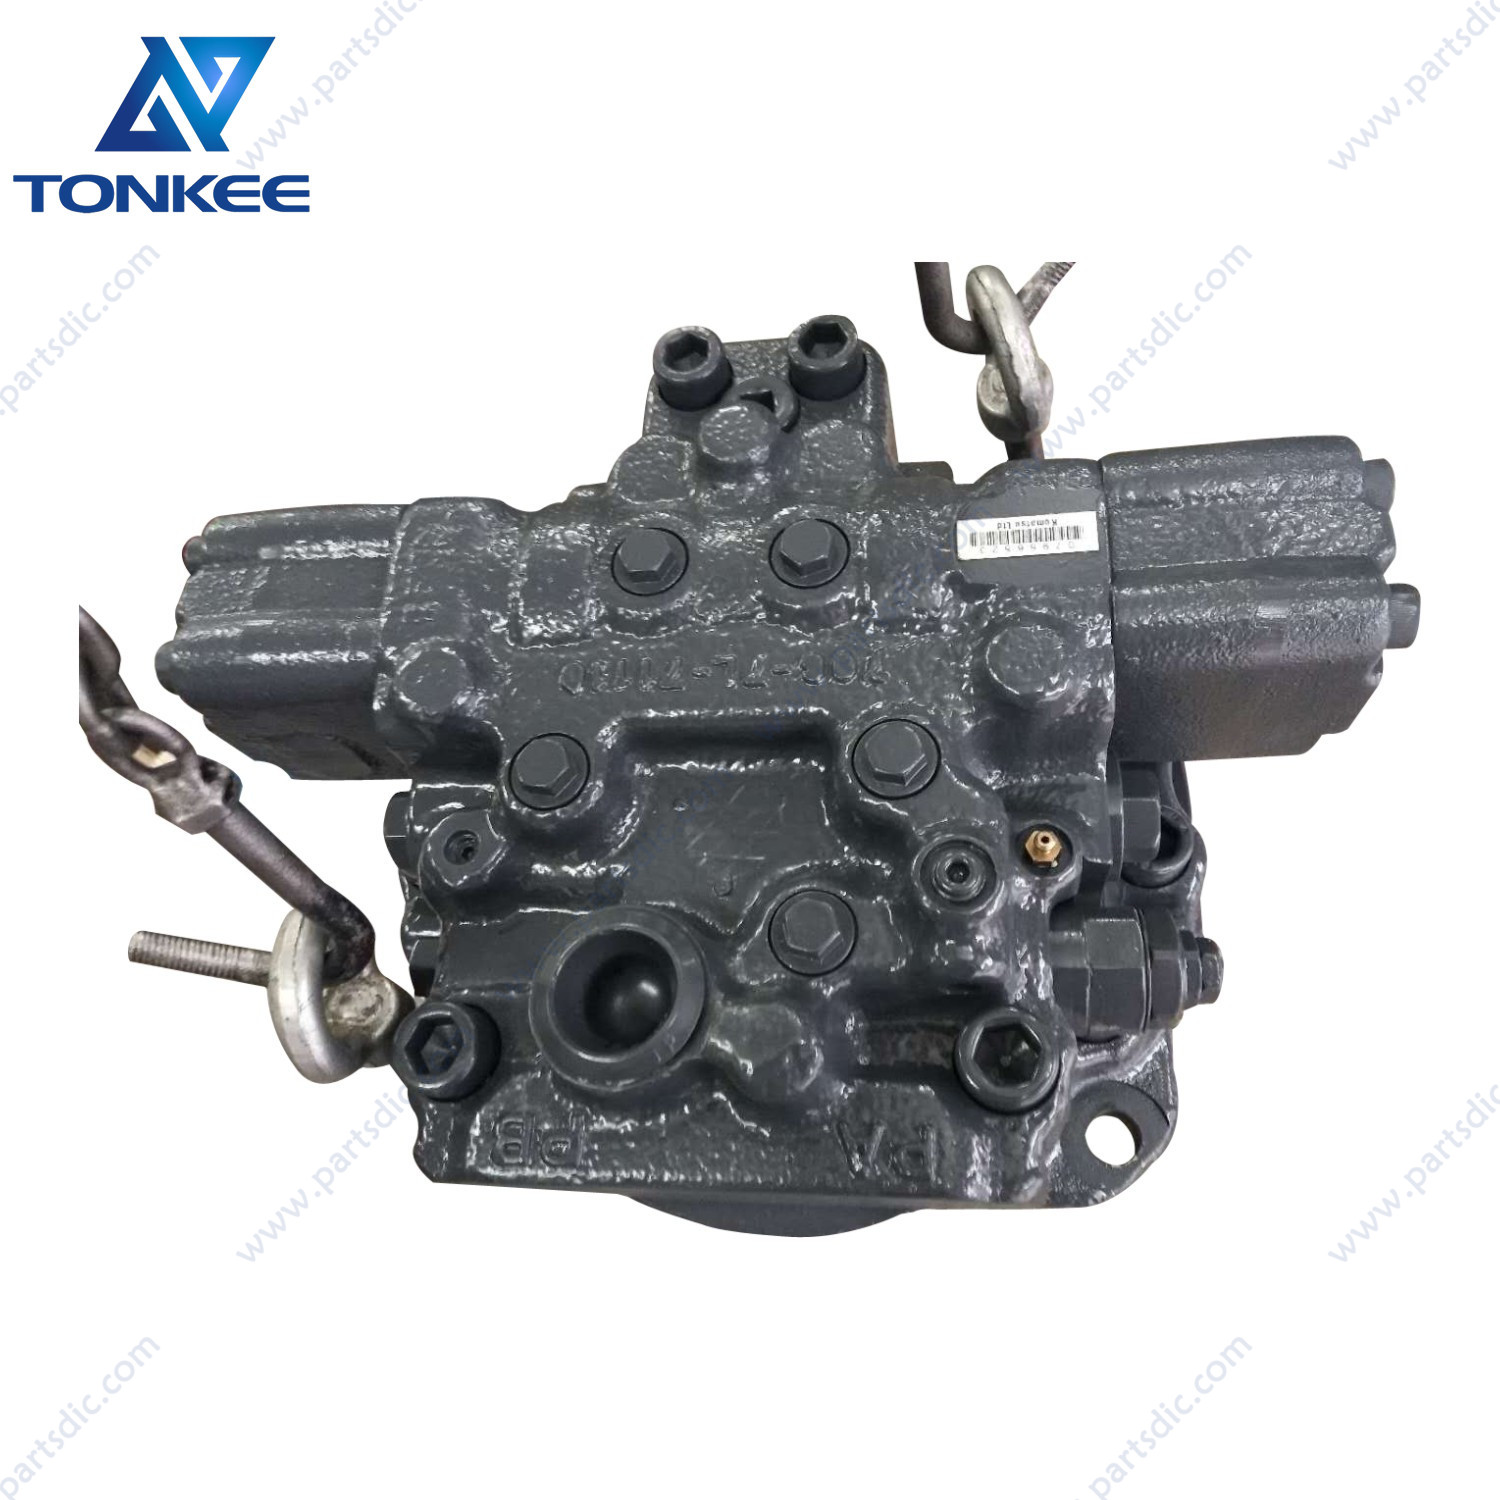 706-7L-01110 travel motor assy excavator PC2000-8 hydraulic travel motor without final drive for KOMATSU